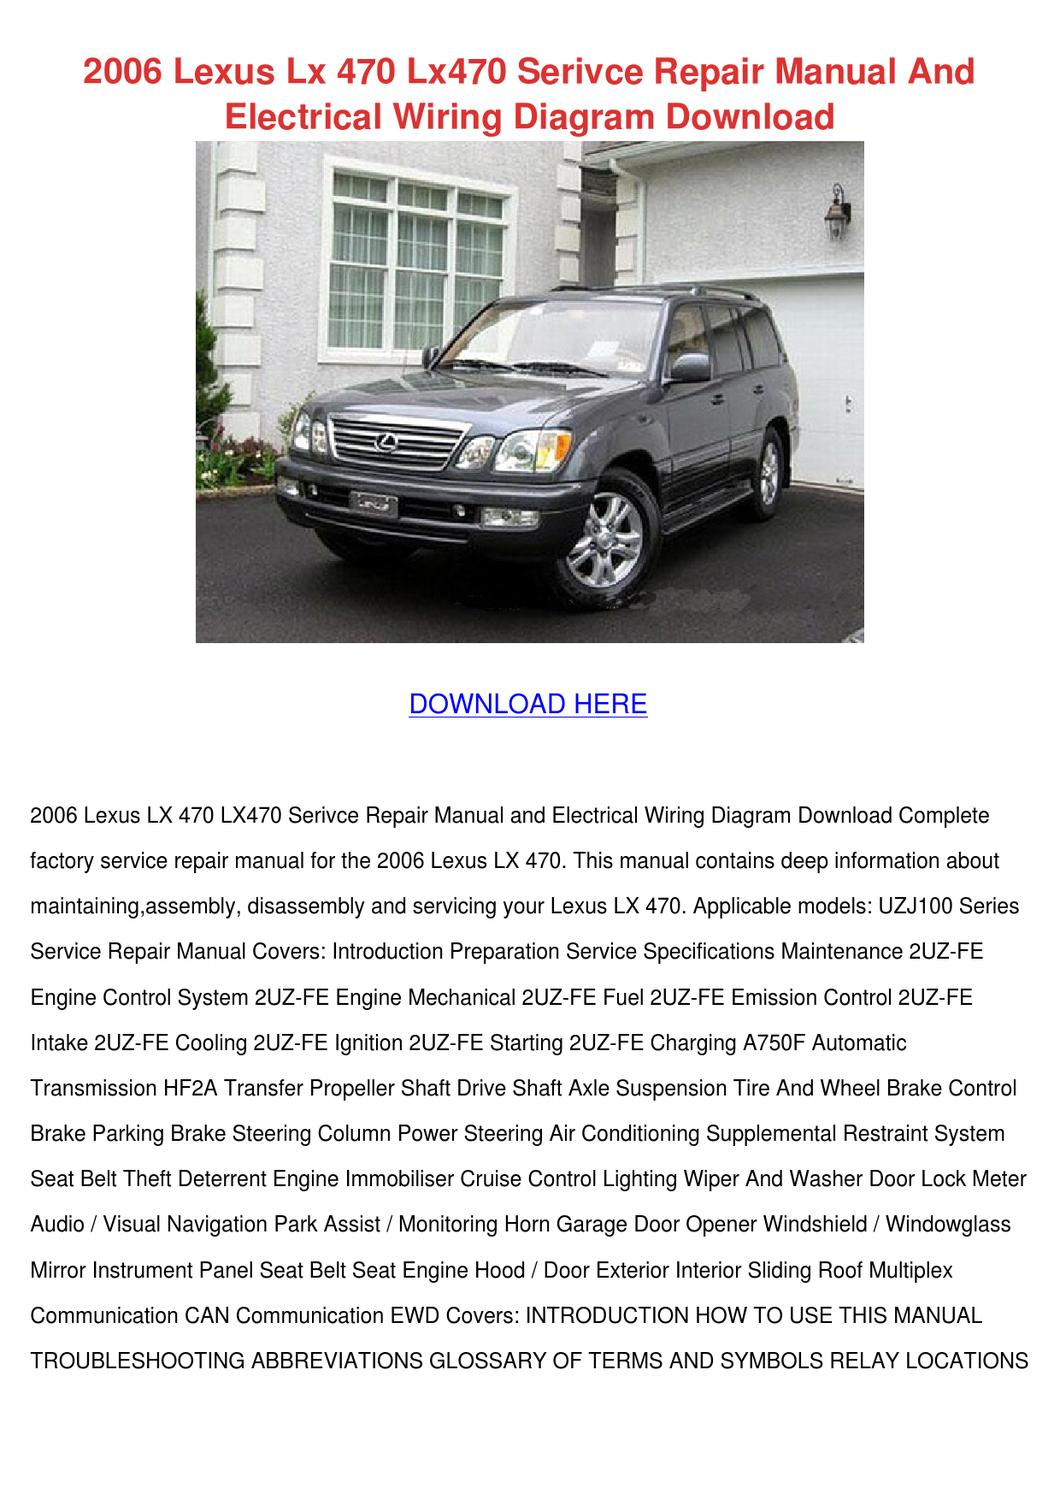 [DIAGRAM_0HG]  2006 Lexus Lx 470 Lx470 Serivce Repair Manual by Cassondra Santanna - issuu | Lexus Lx 470 Wiring Diagram |  | Issuu